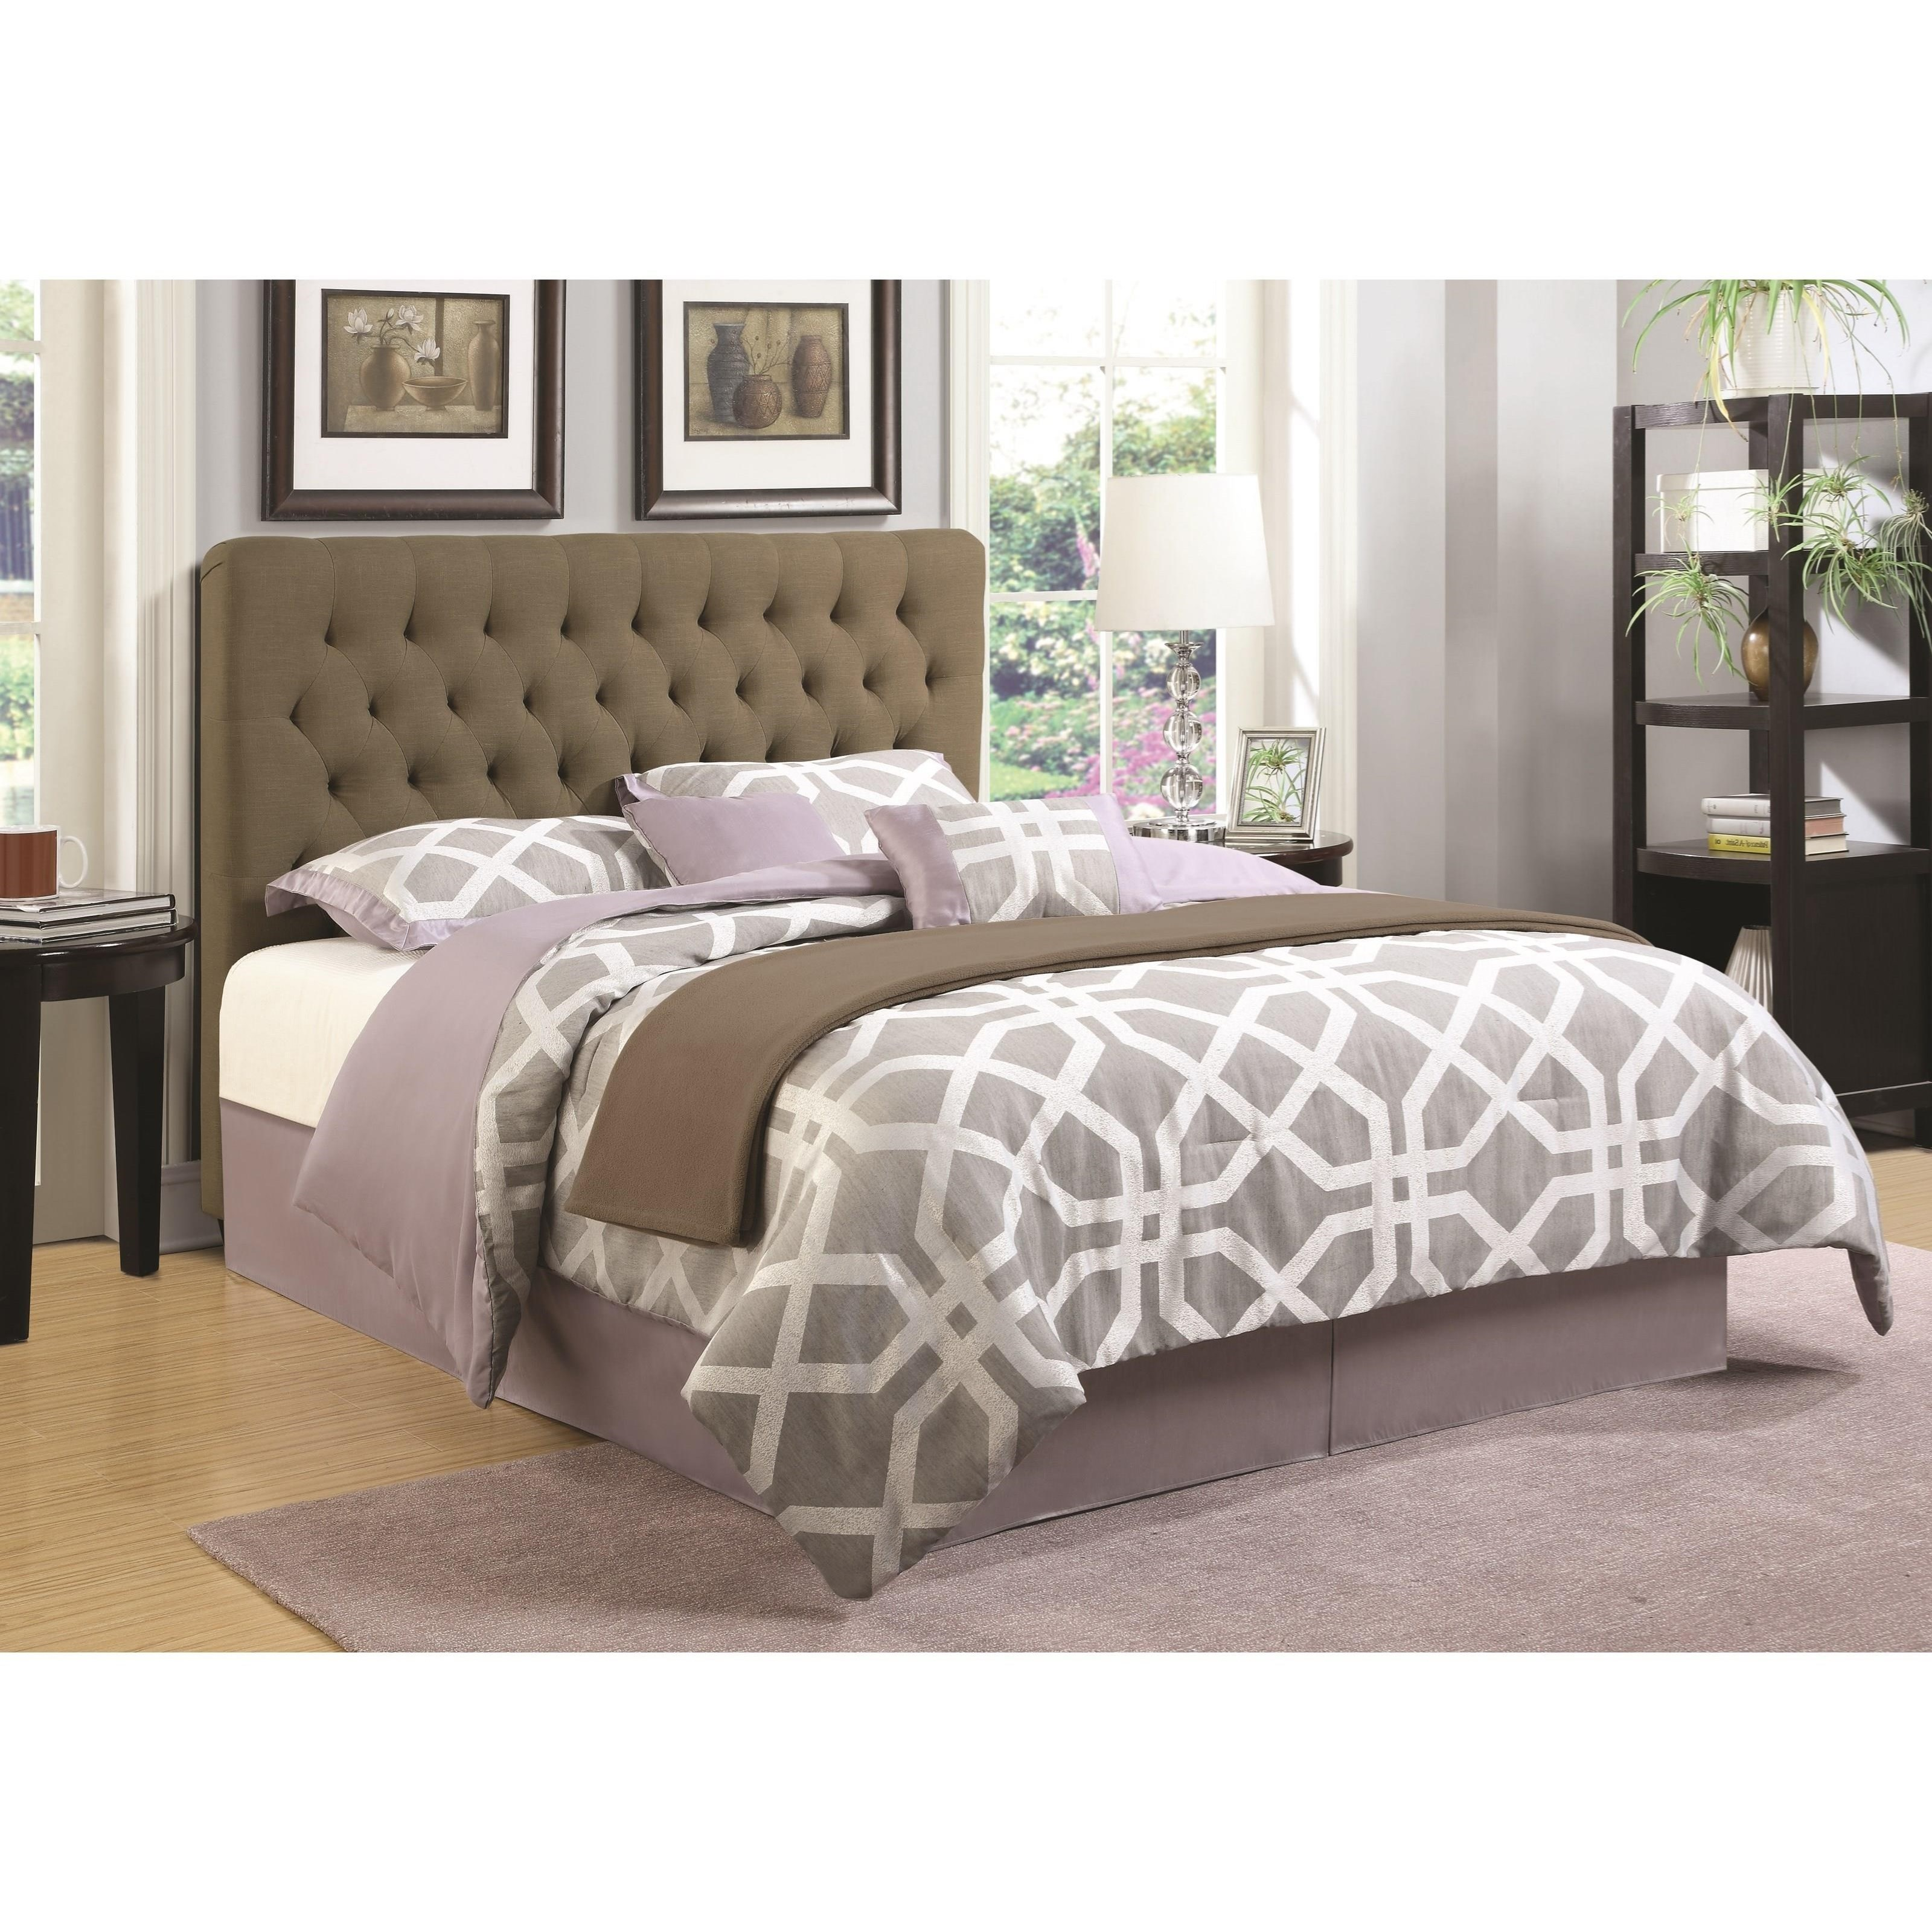 Coaster Upholstered Beds Queen Headboard - Item Number: 300528QB1